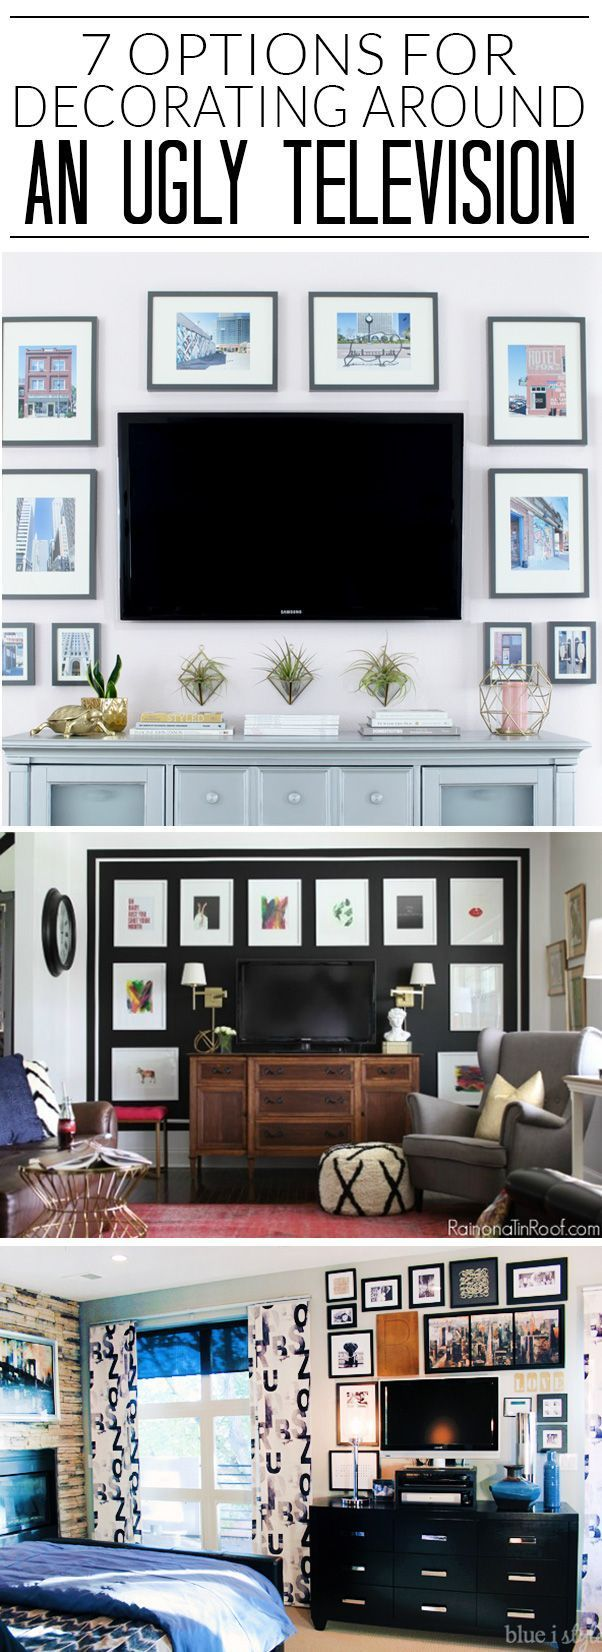 best 25 decorate around tv ideas on pinterest tv wall decor